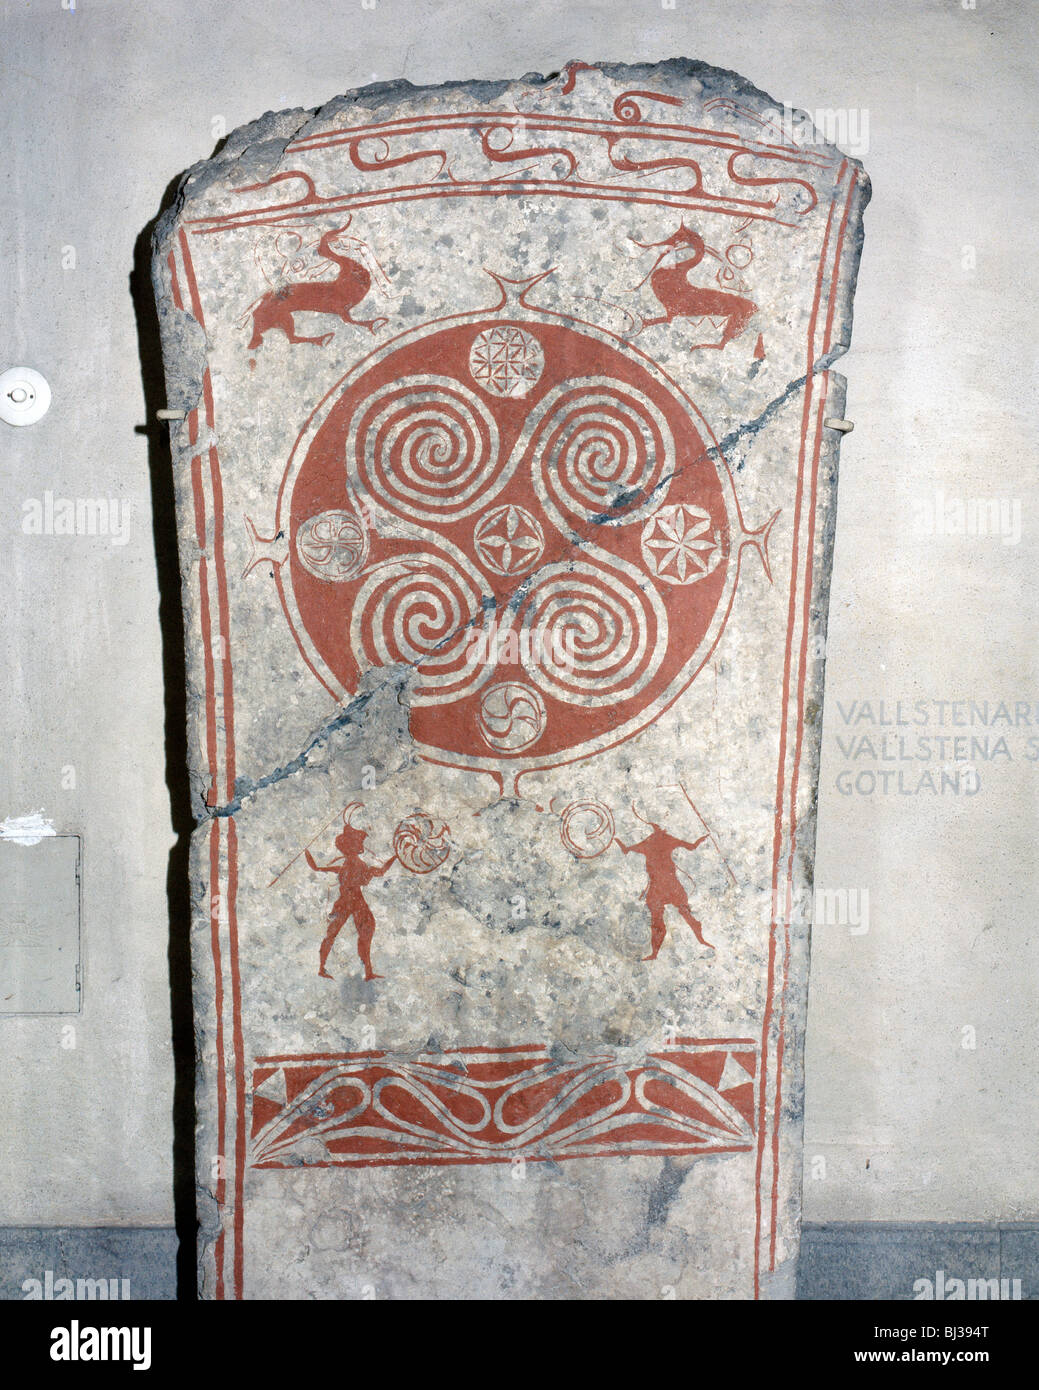 Viking memorial picture stone, from Martebo, Gotland, Sweden, 5th century. Artist: Werner Forman - Stock Image